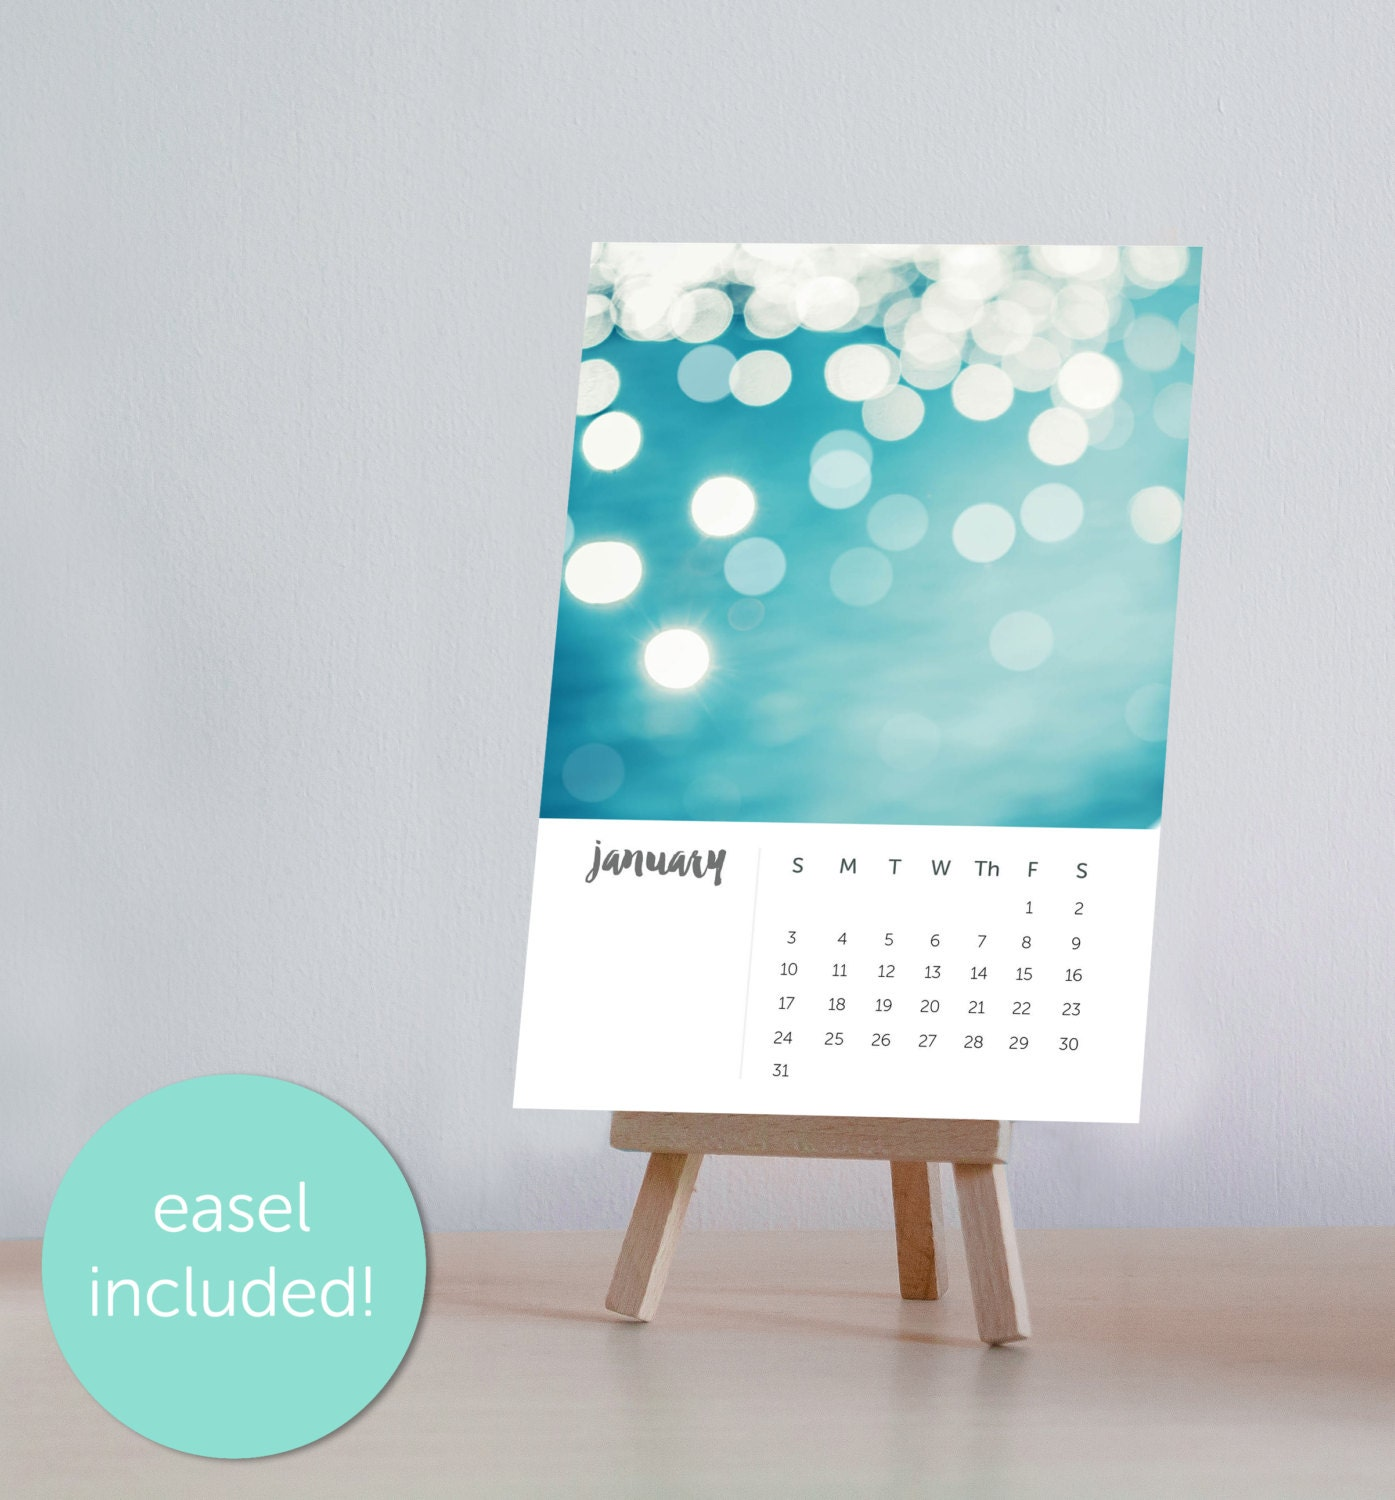 r memory desk by aly dosdall free printable blog we keepers calendar